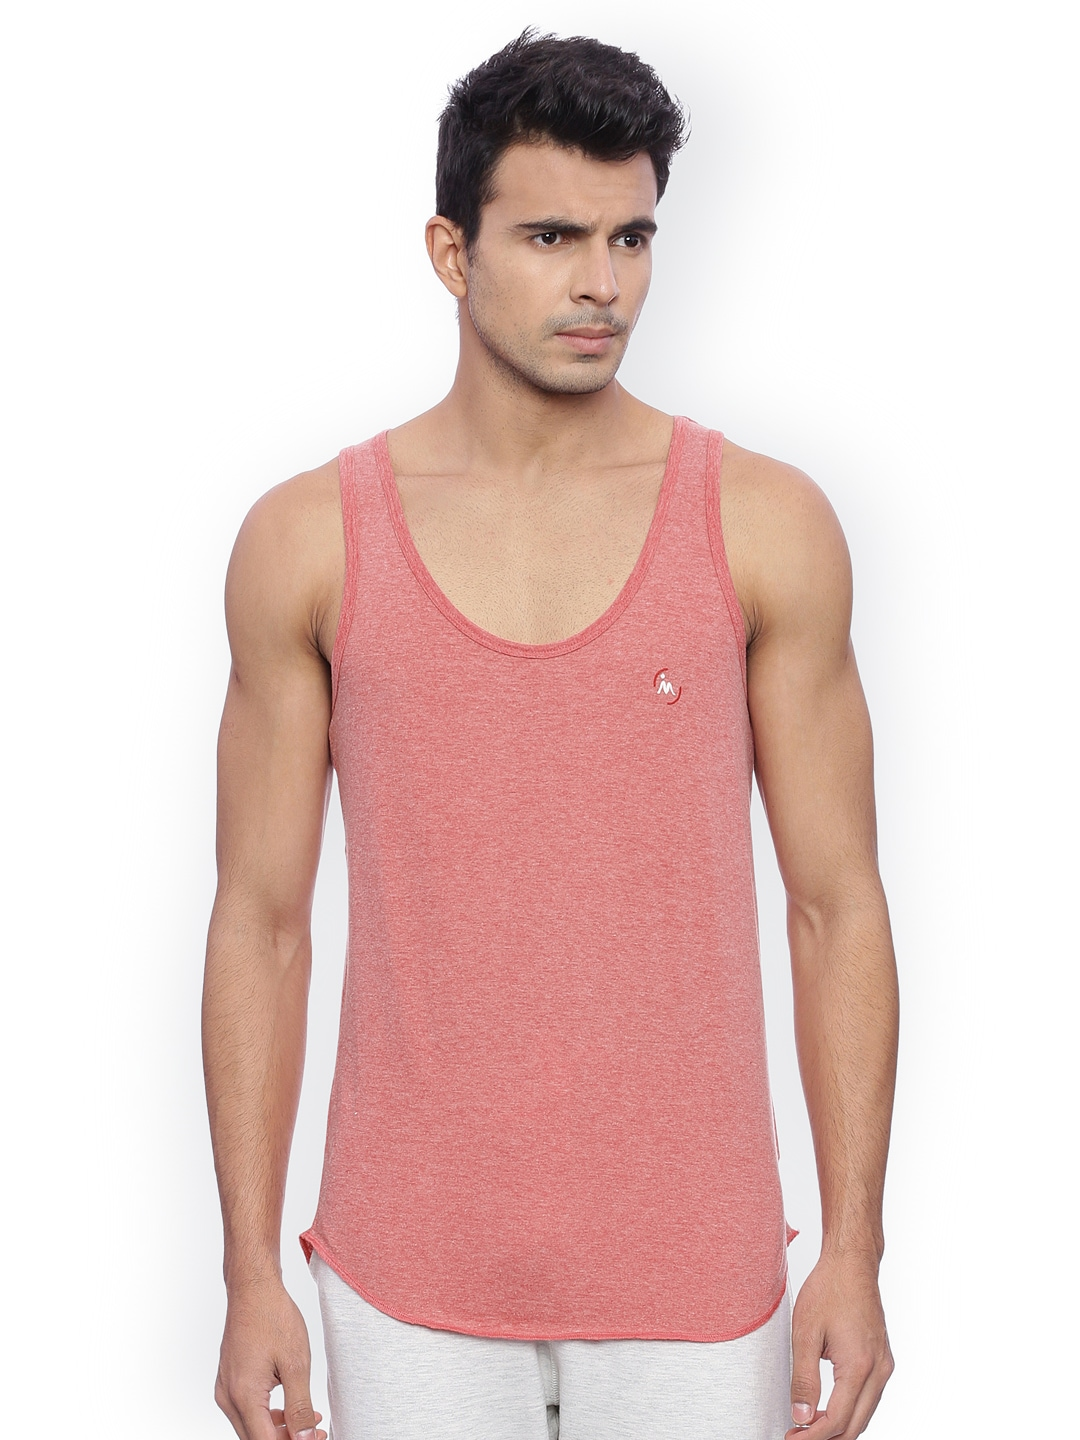 Masculino Latino Men Pink Solid T-shirt image